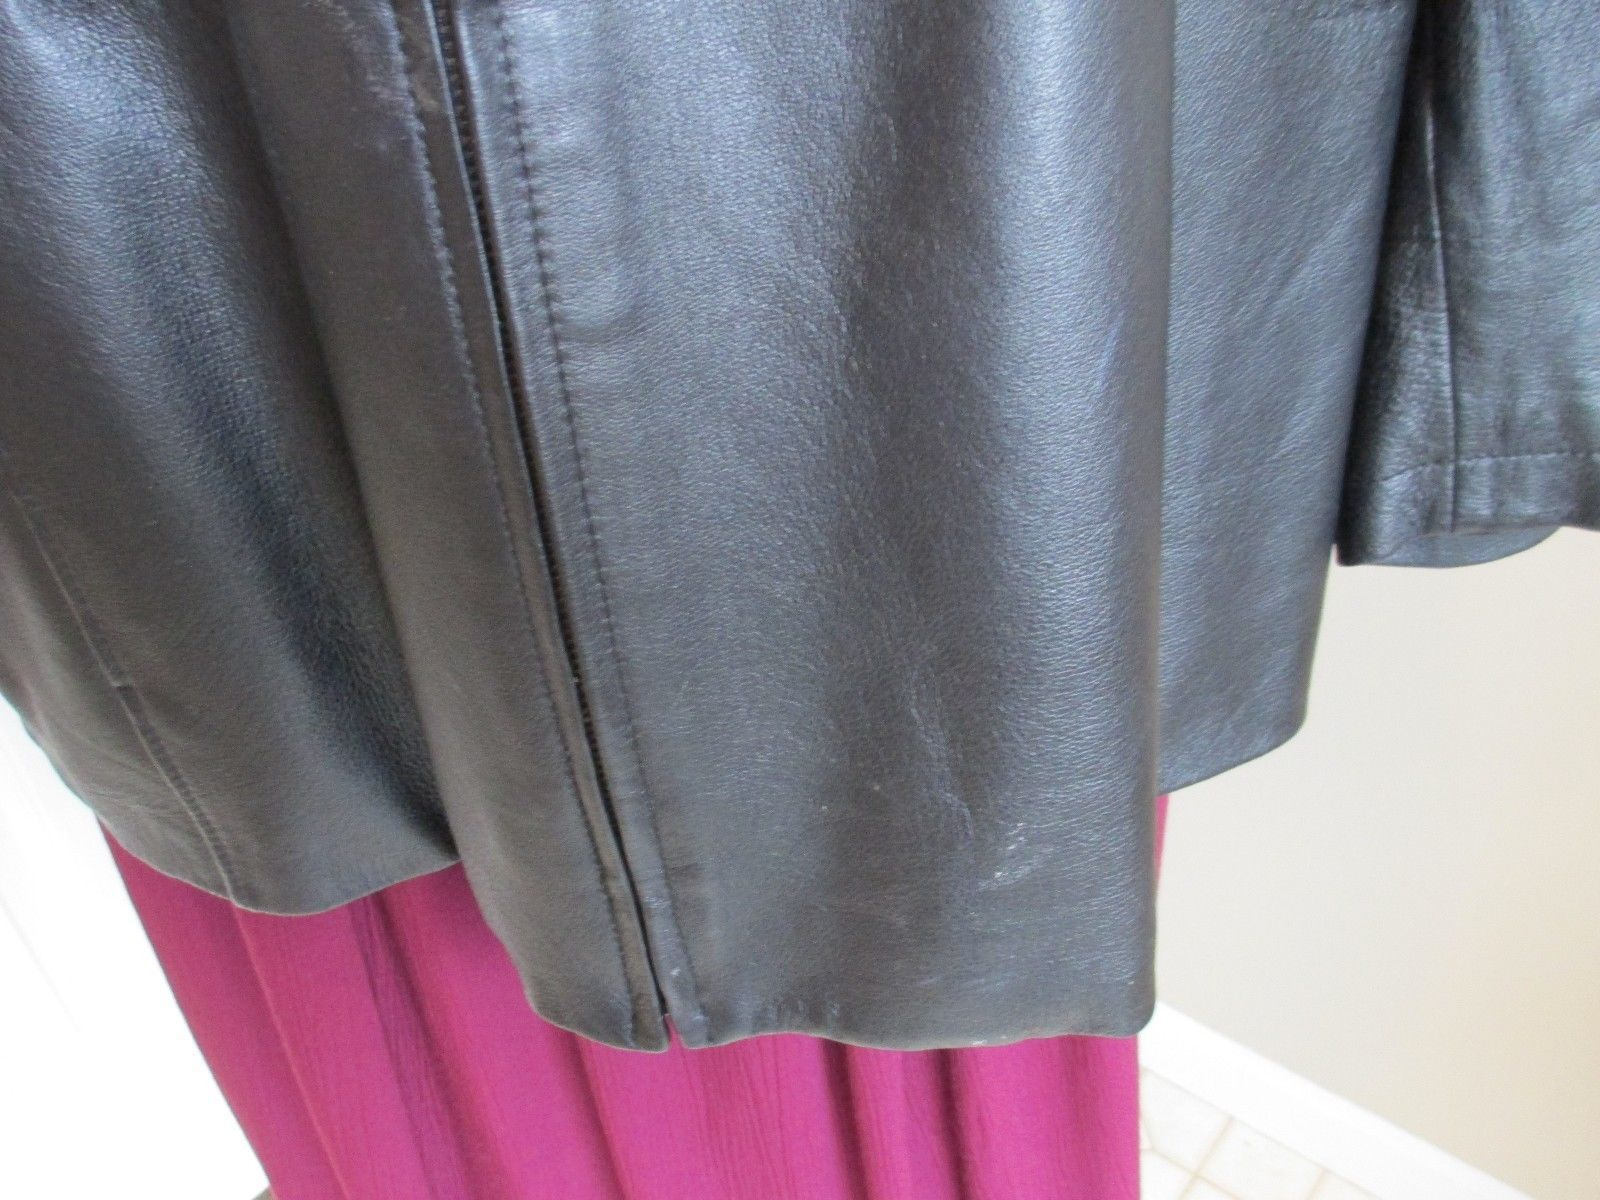 bd2472fab39 Maggie Barnes Leather Jacket Sz 22 24 and similar items